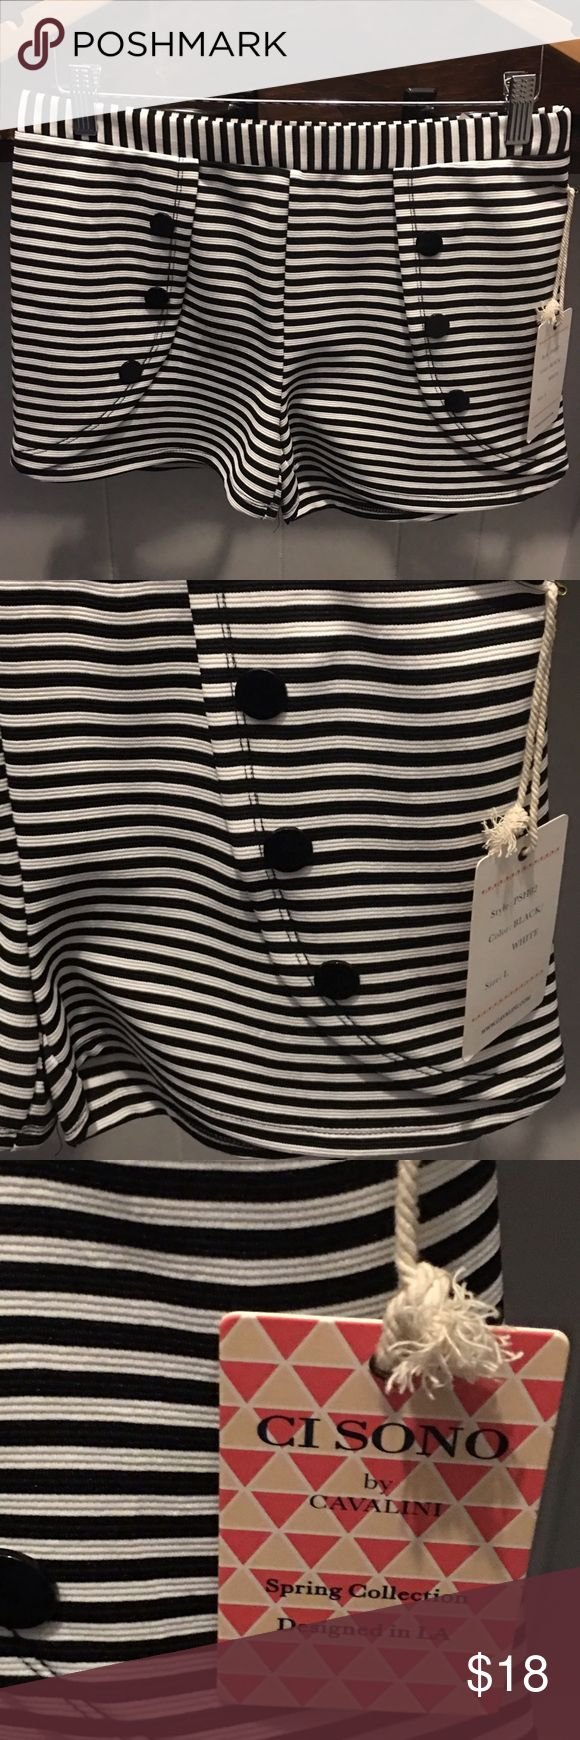 💛Black & white stripe nautical shorts size L ⚓️ Black & white stripe nautical shorts size Large brand new with tags Ci Sono Shorts